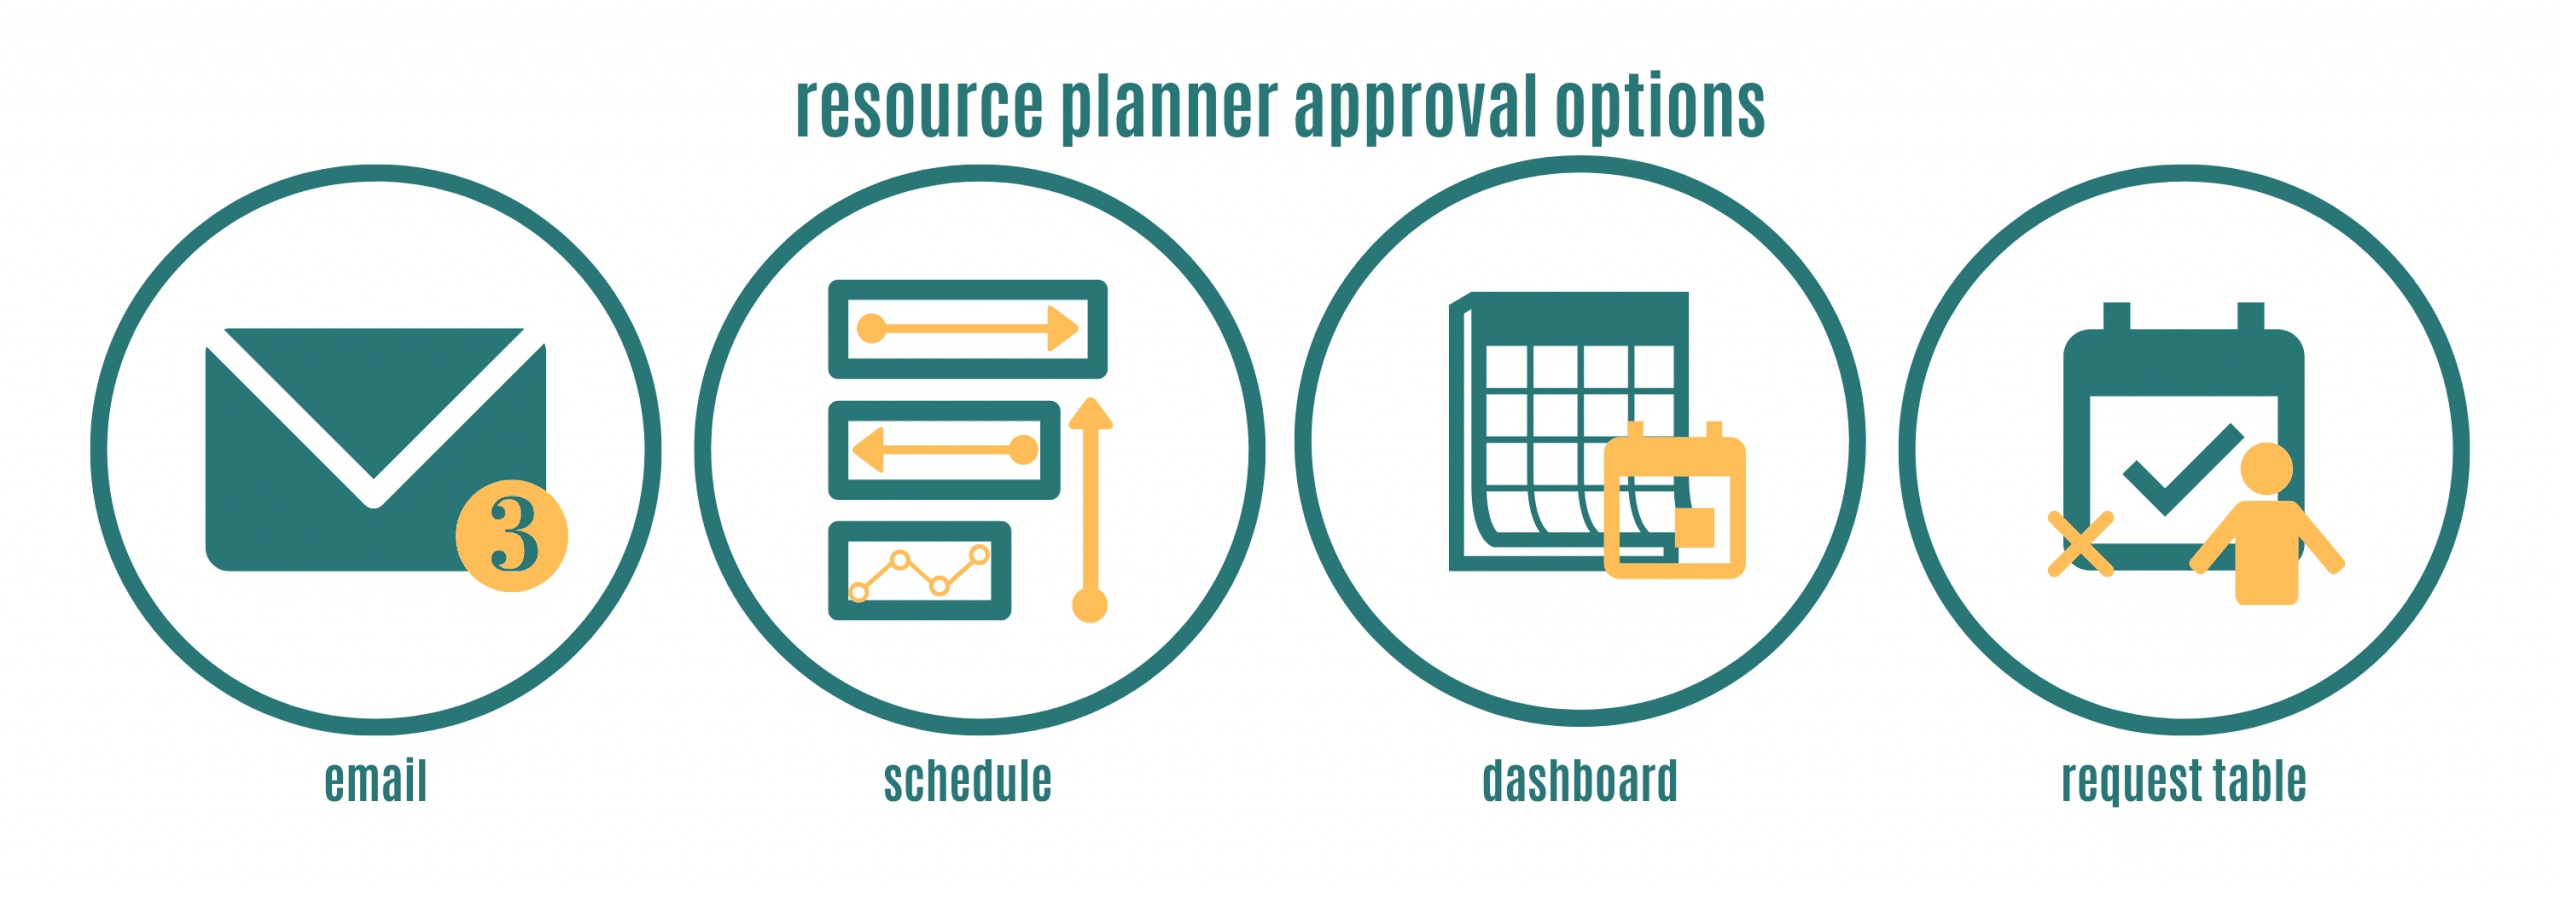 Approval_Request_options